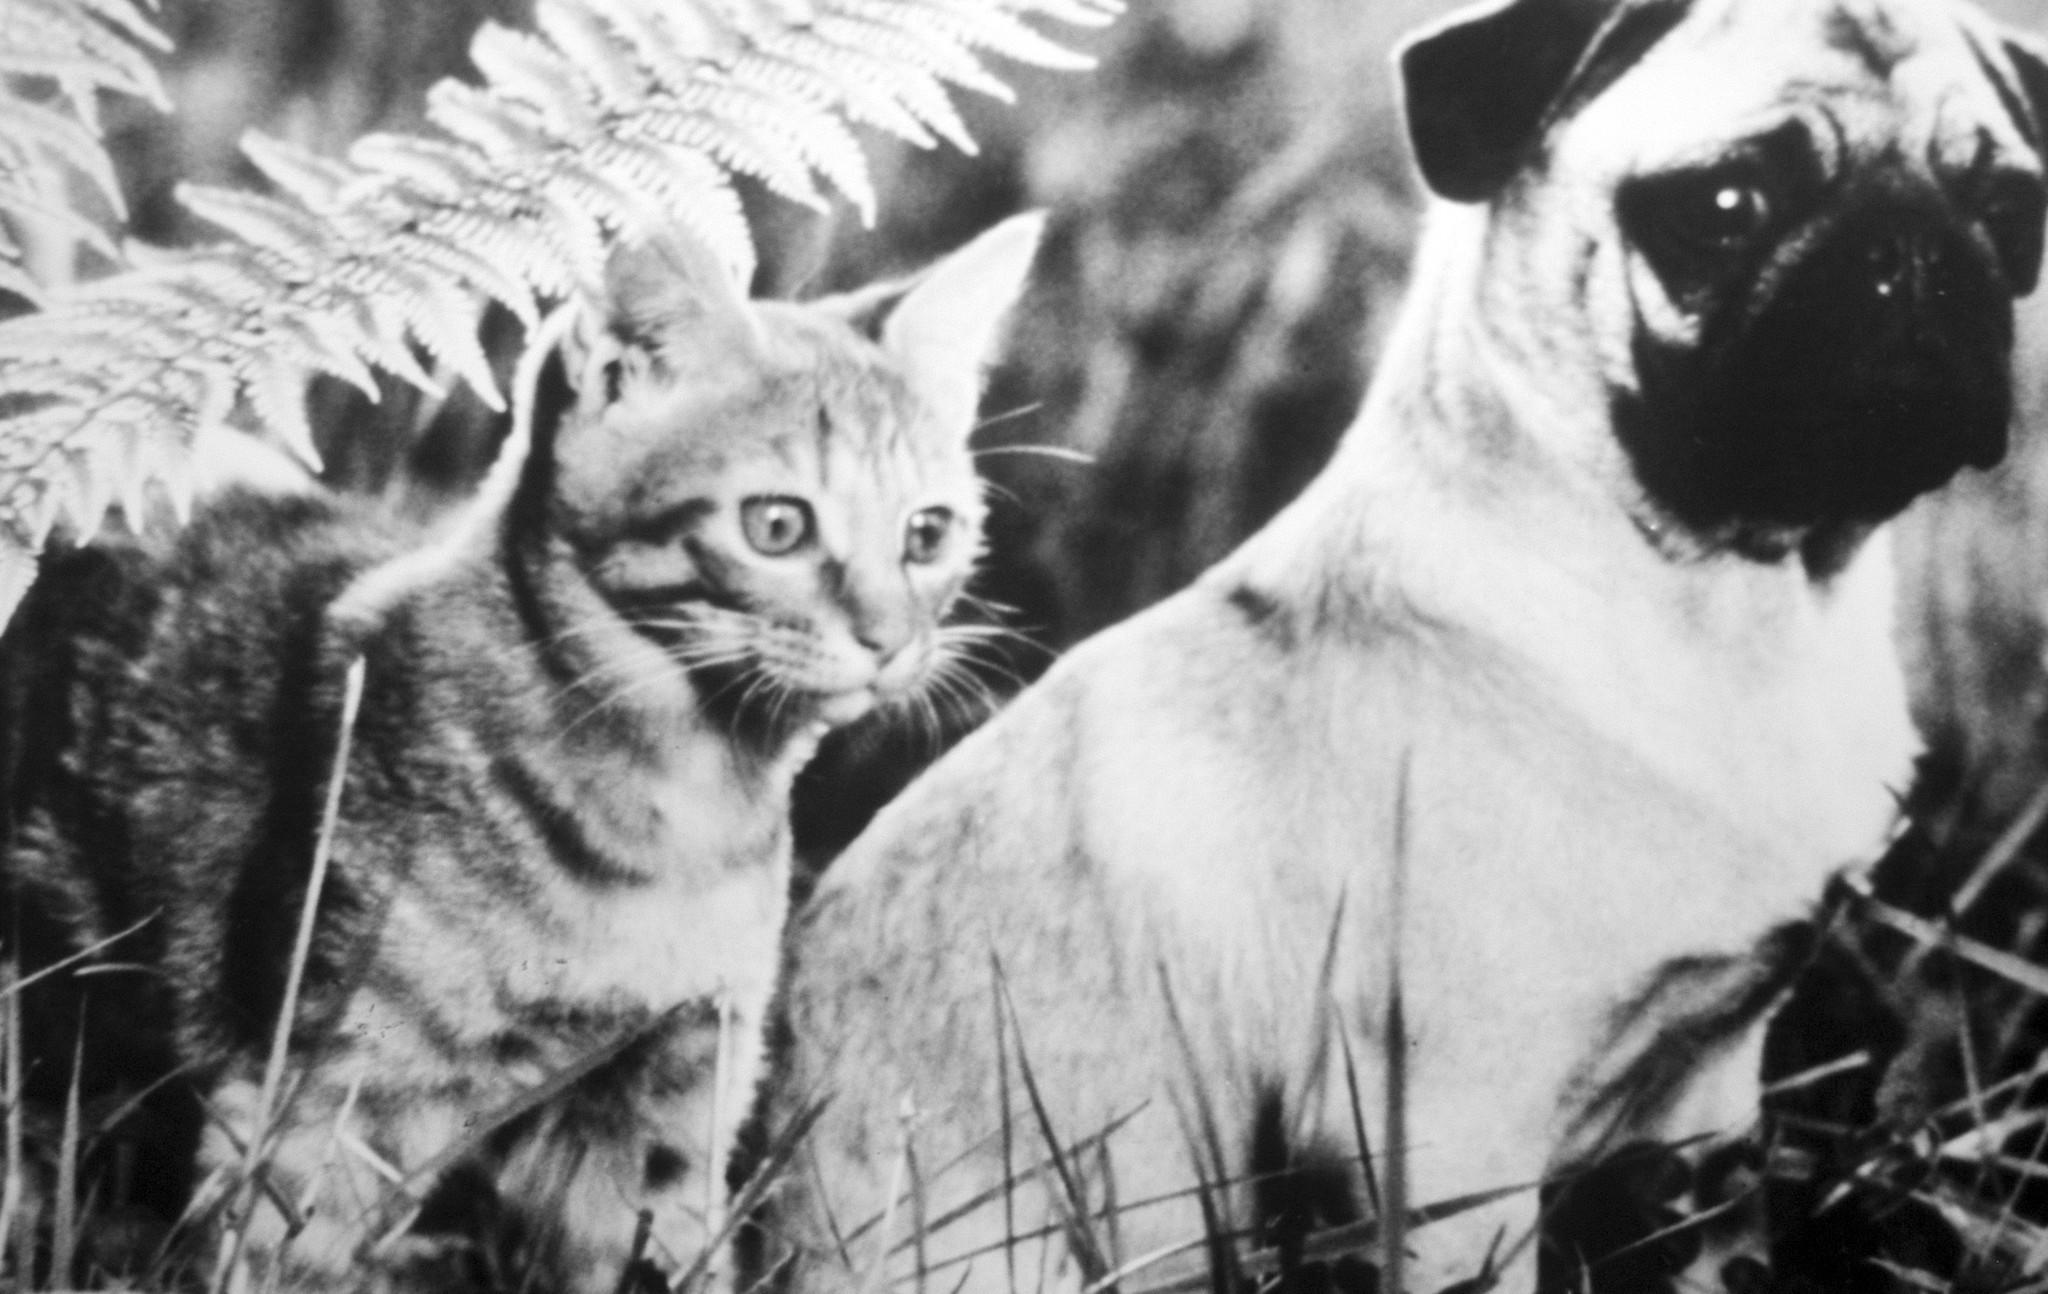 """A scene from the 1986 movie """"The Adventures of Milo and Otis,"""" about Milo, a kitten, and Otis, a puppy, is shown. Mars Inc. is buying most of Procter & Gamble's pet food assets and venturing deeper into the business of feeding people's cats, dogs and other pets."""